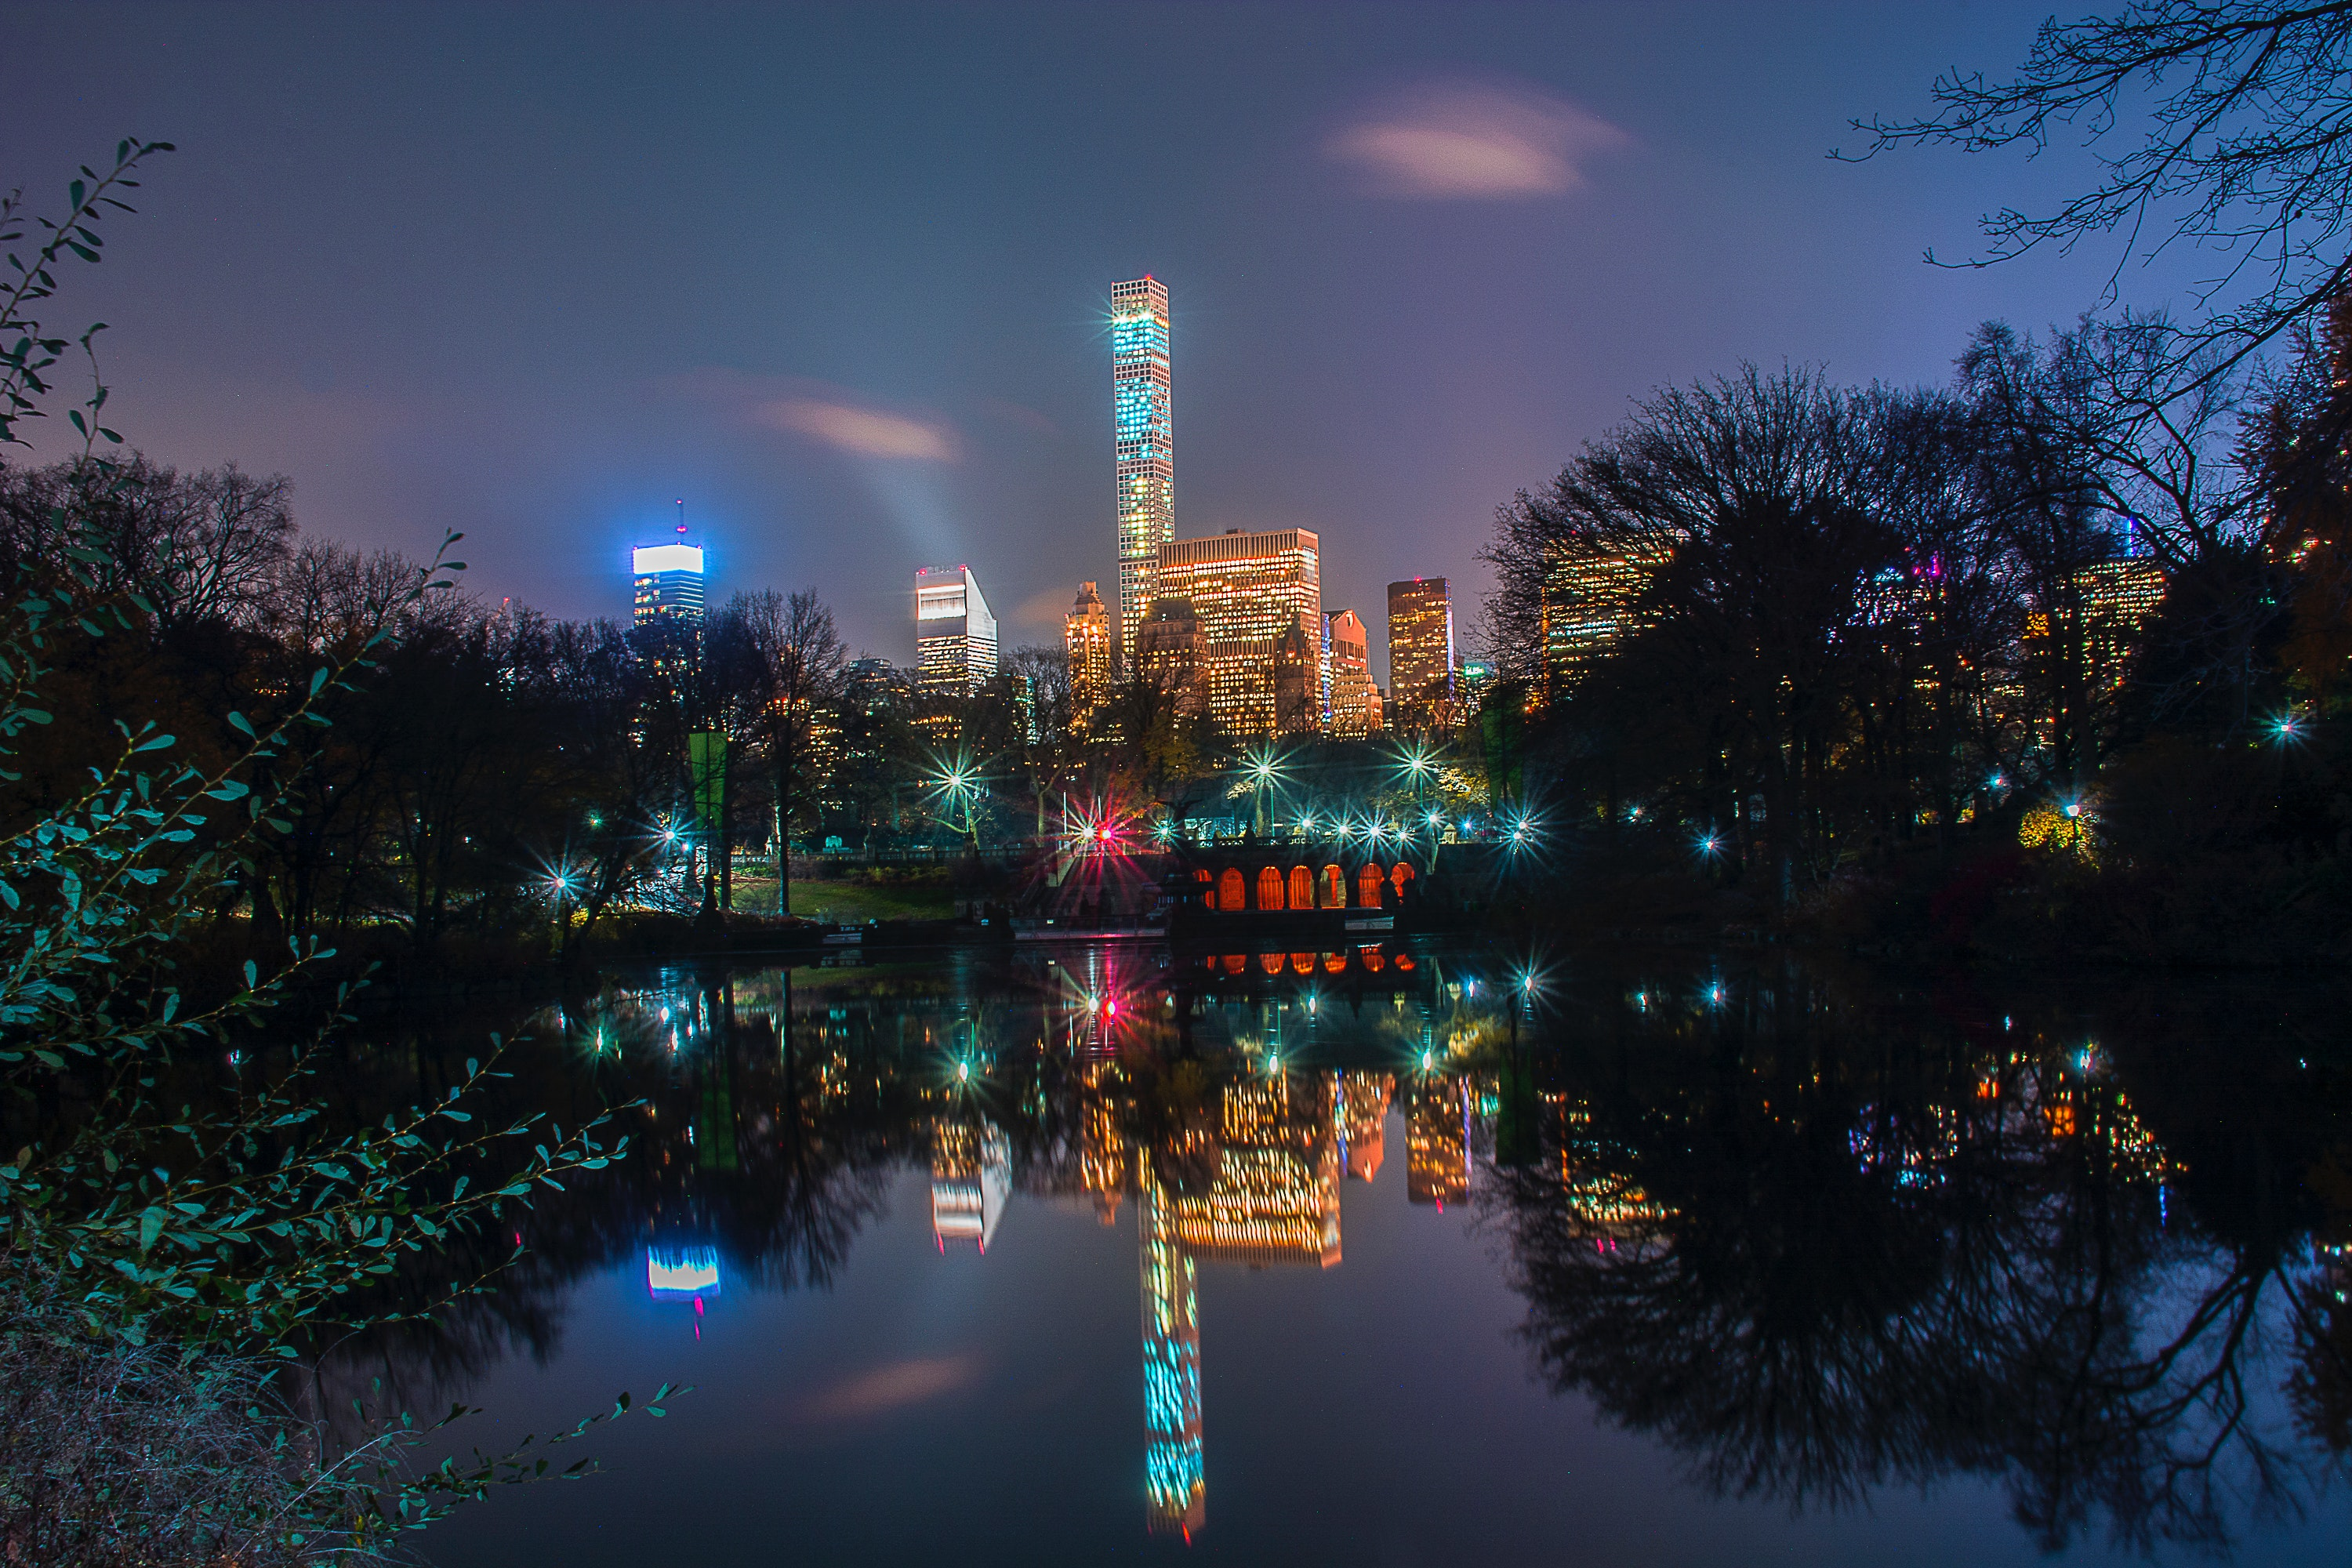 Panoramic Photo of City Skyline, Architecture, Trees, Travel, Tower, HQ Photo